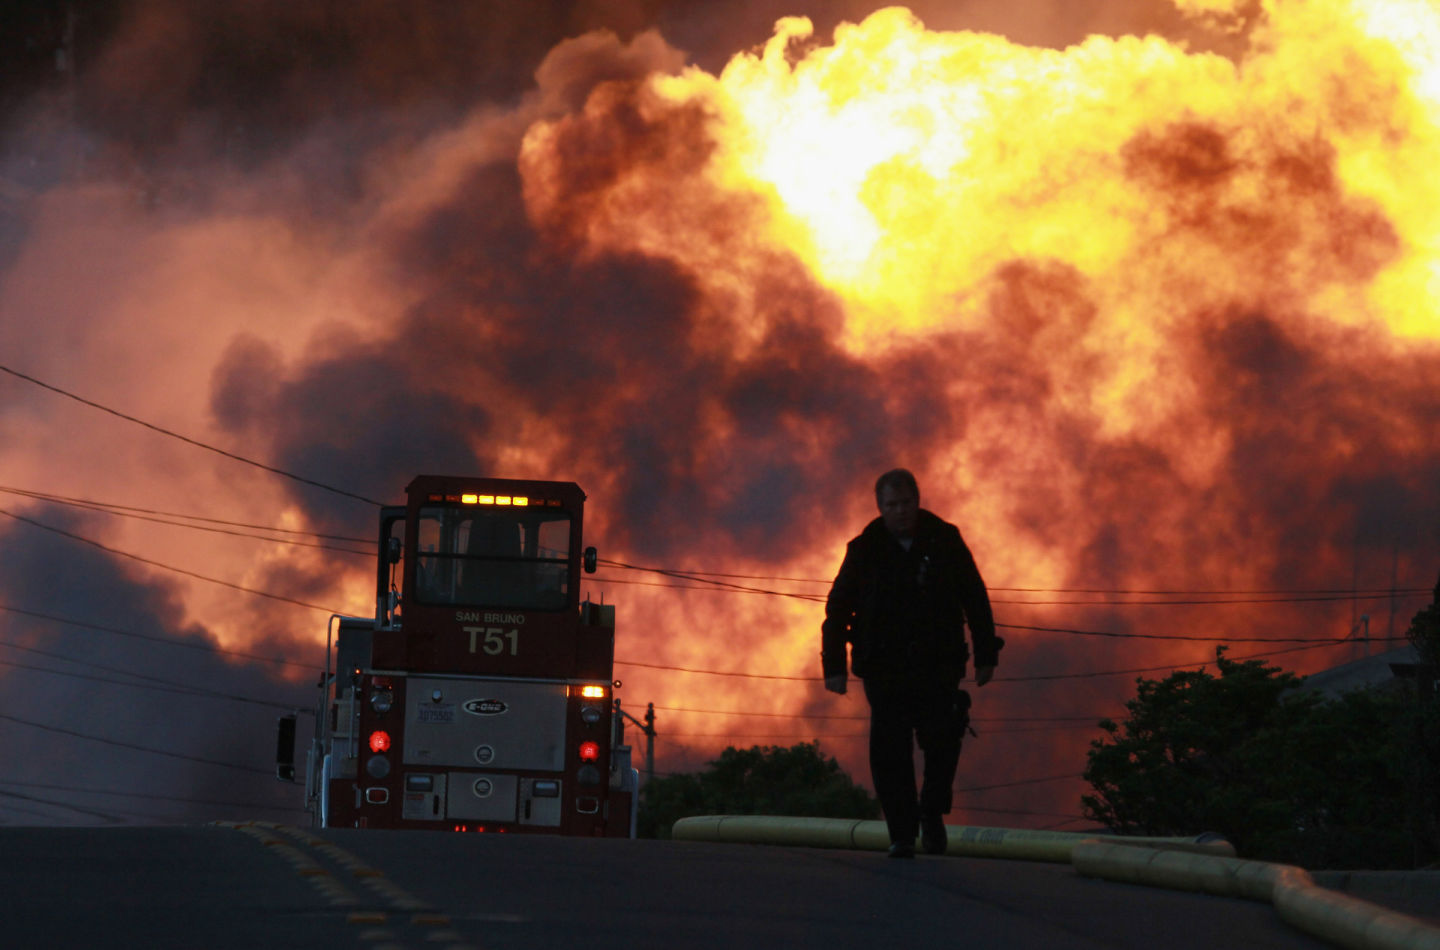 A law enforcement official runs towards a massive fire in the Crestmoor neighborhood of San Bruno on September 9, 2010.